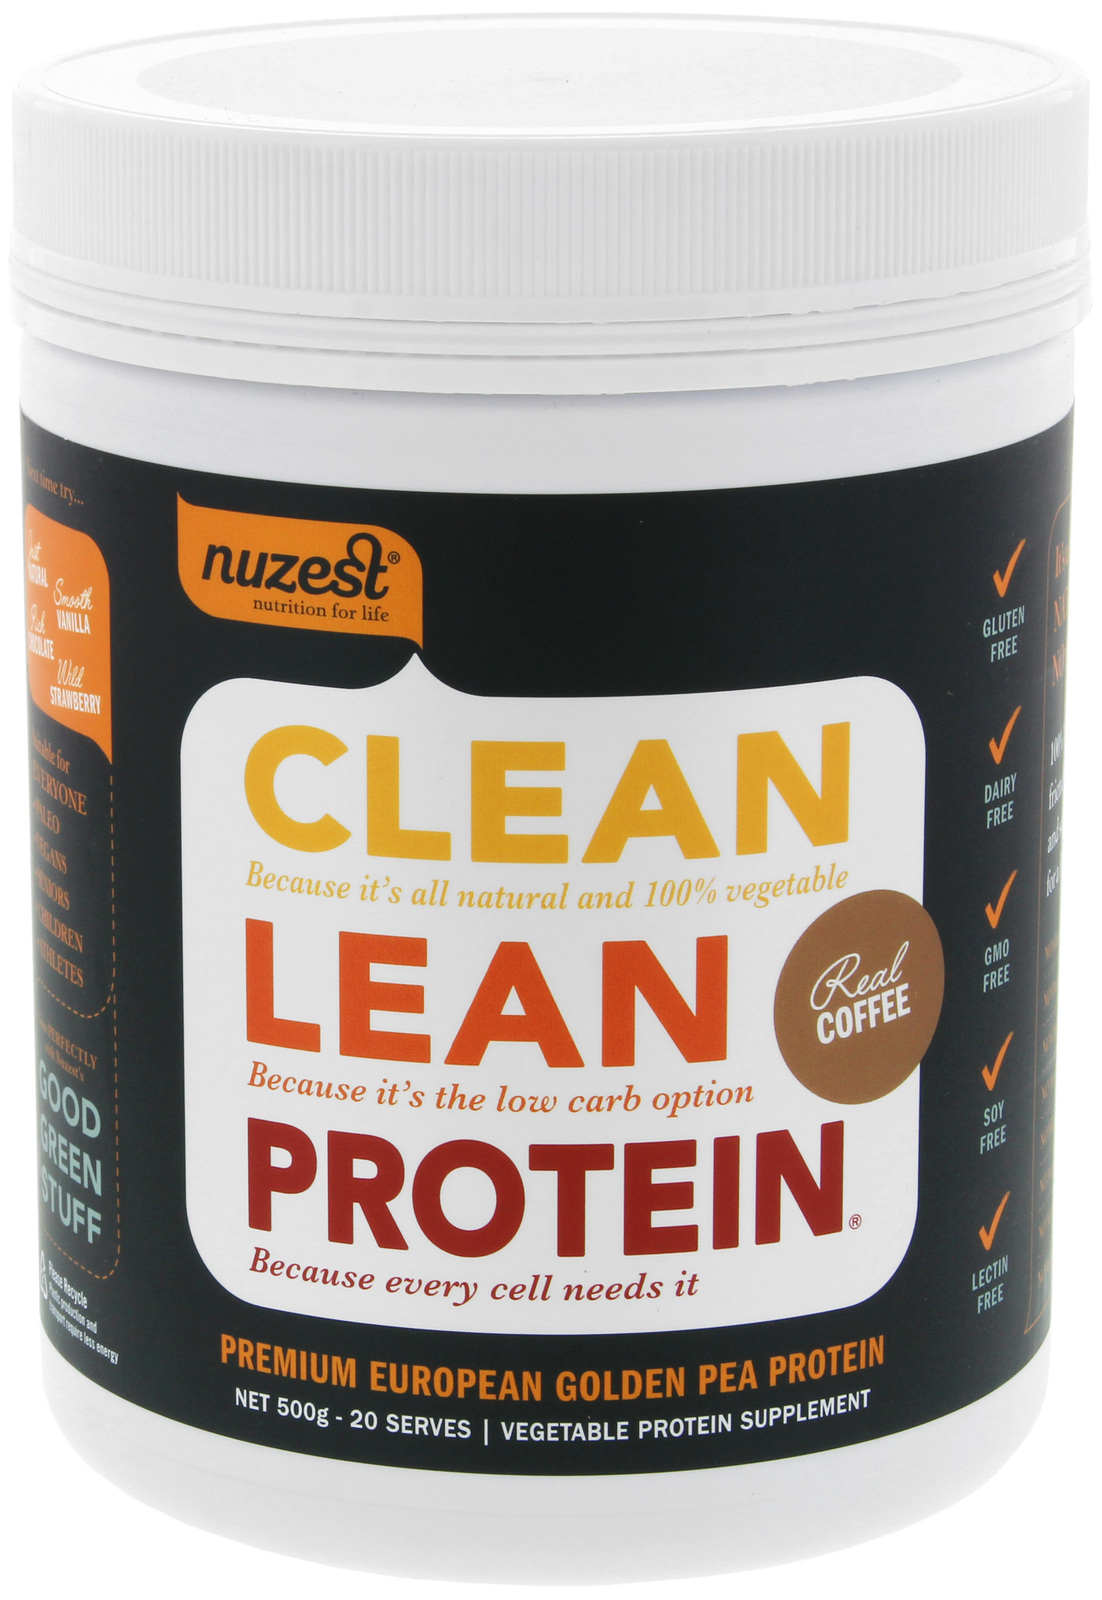 Clean Lean Protein - 500g (Real Coffee) image